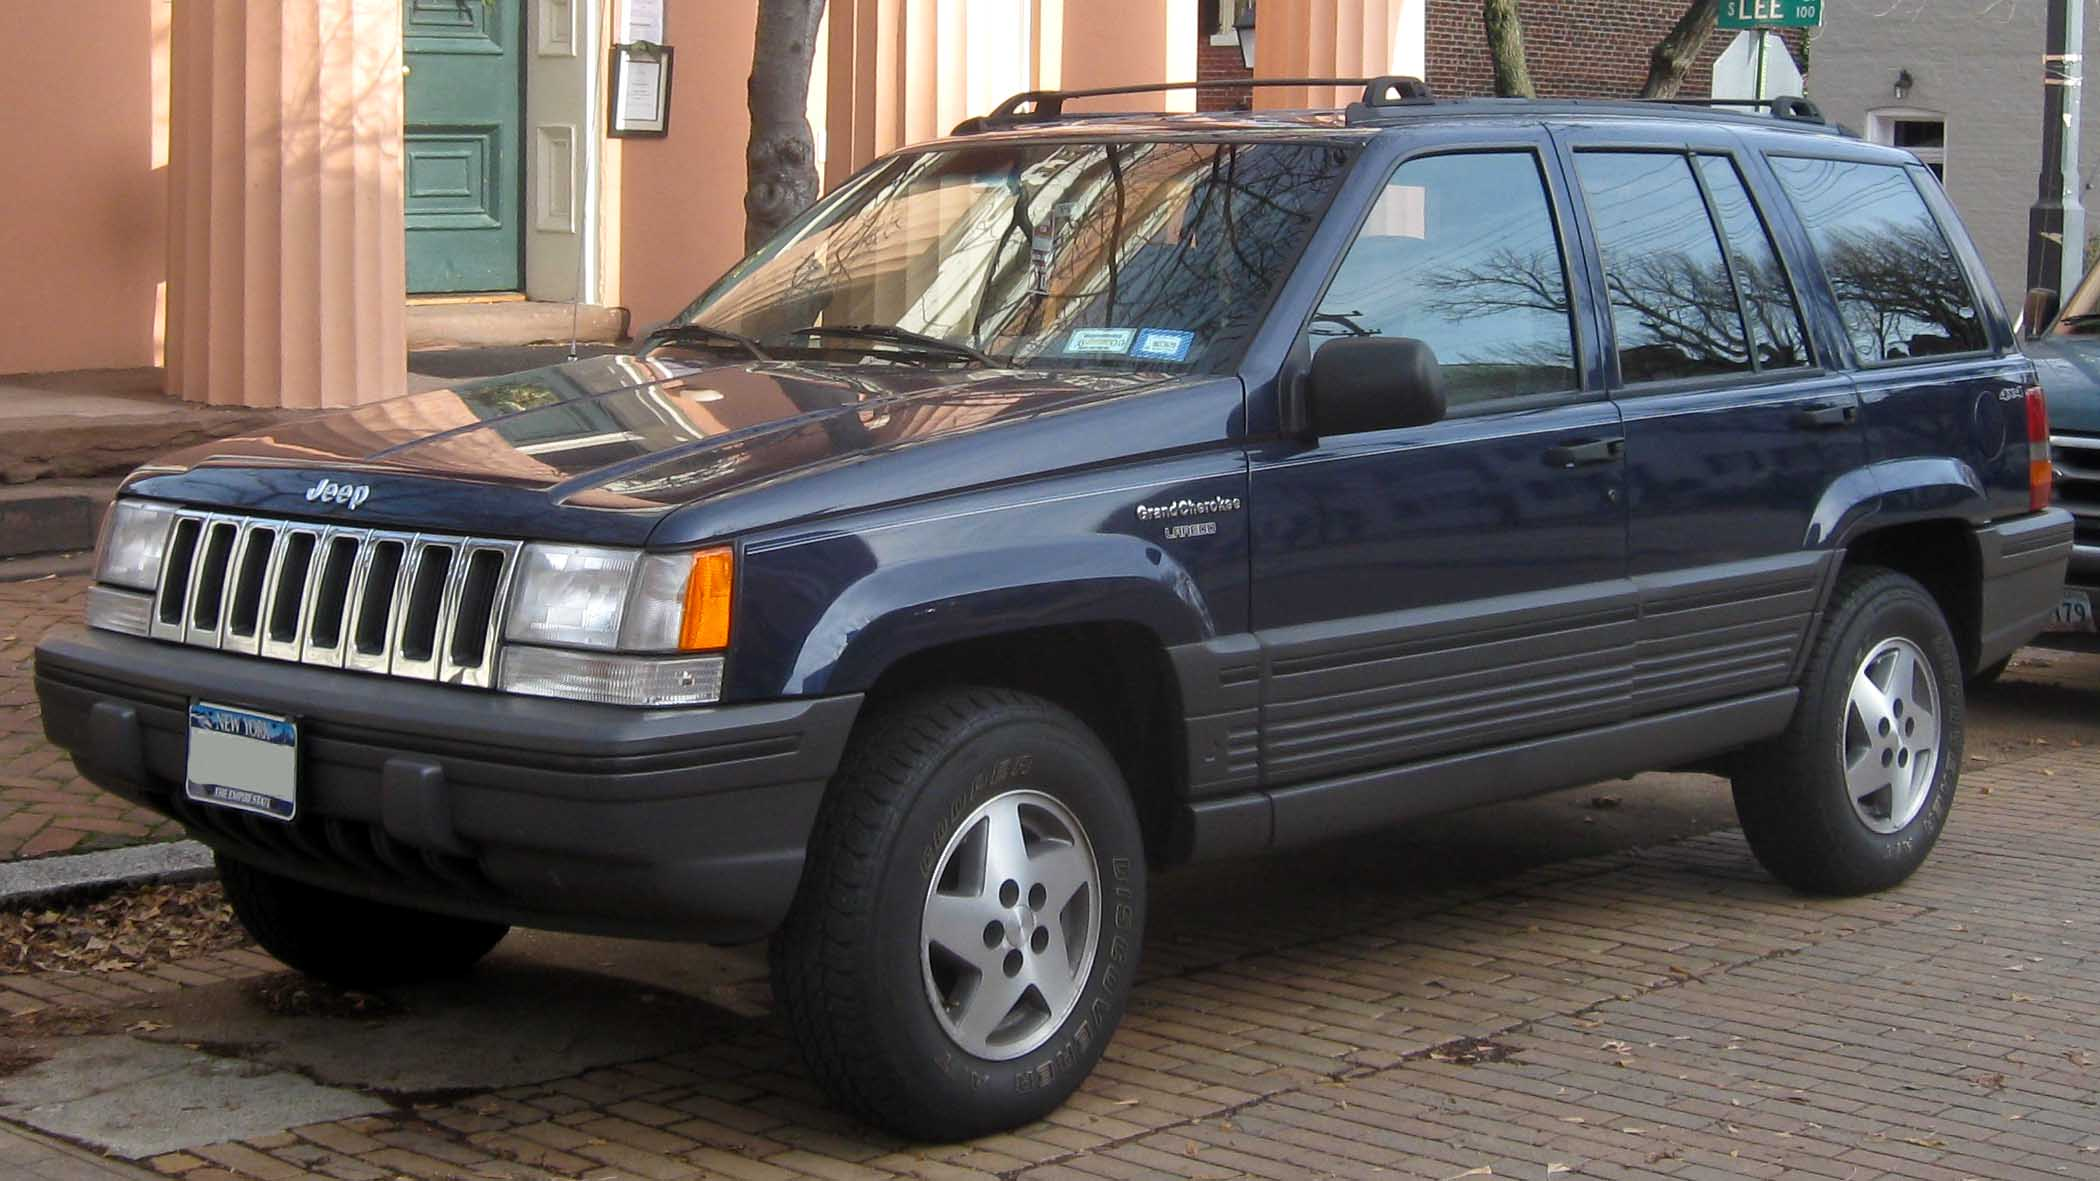 1995 JEEP GRAND CHEROKEE   Image #6